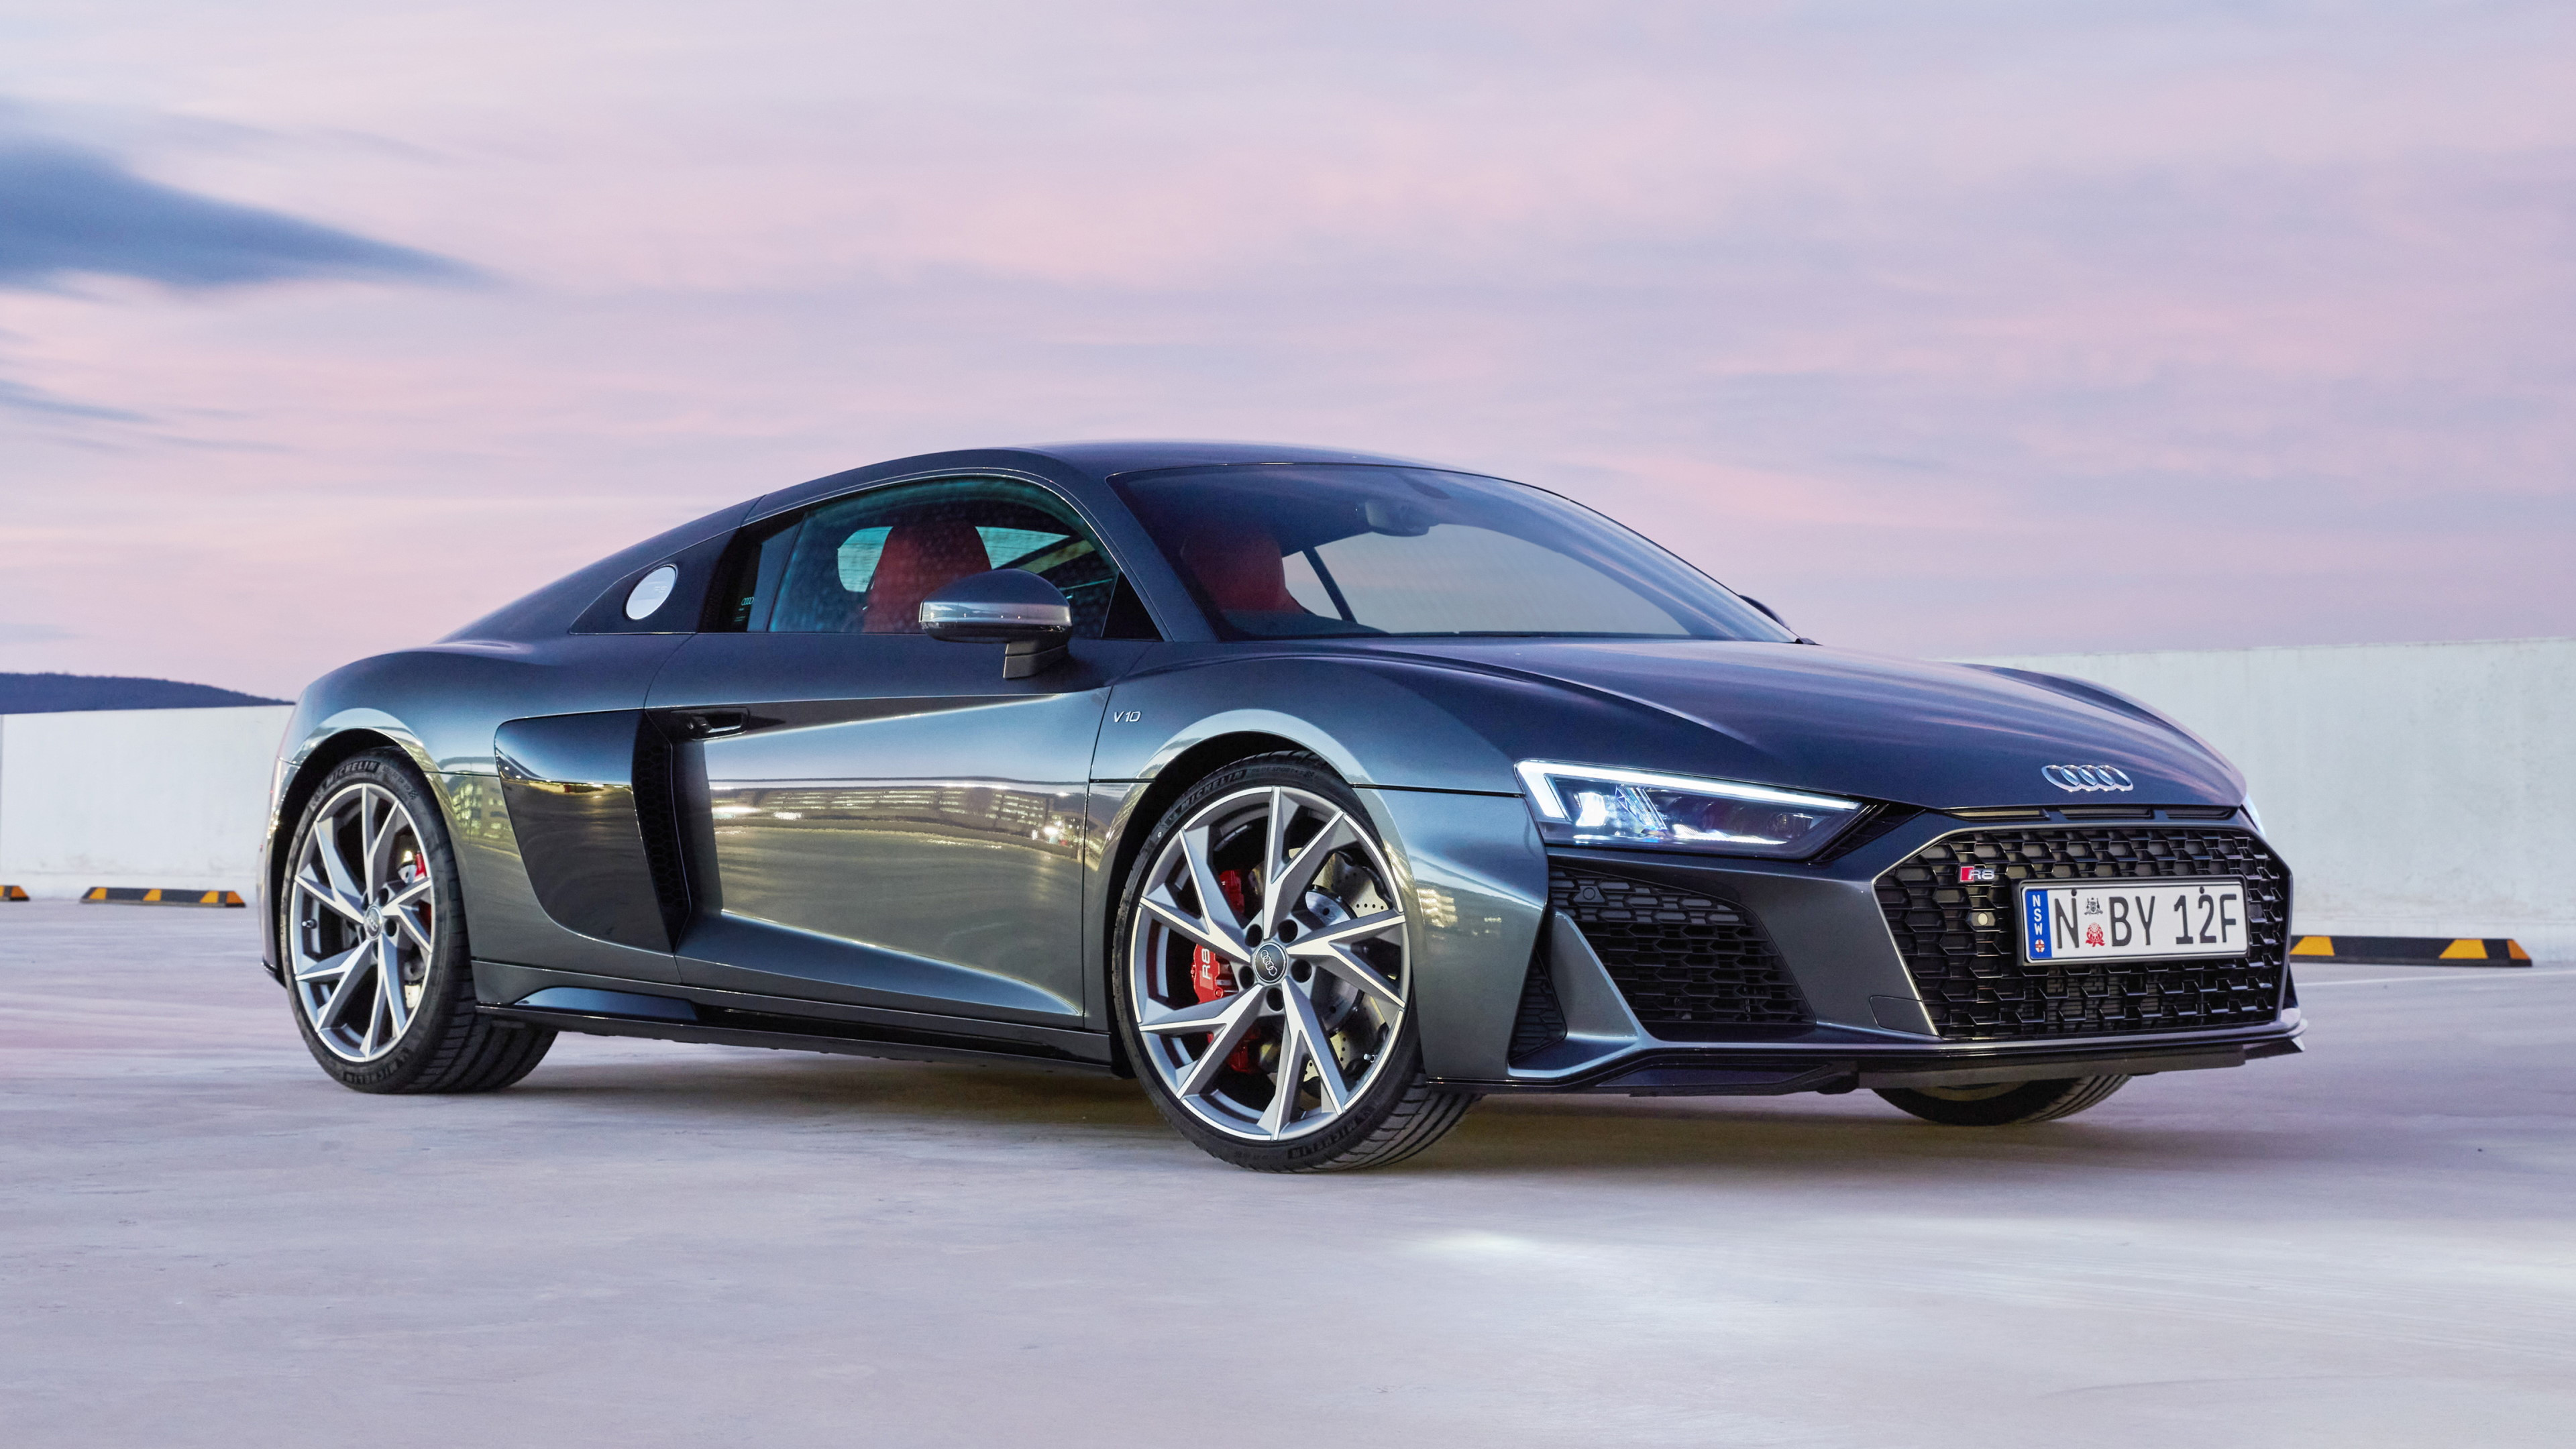 Audi R8 V10 RWD Coupe wallpaper 3840x2160